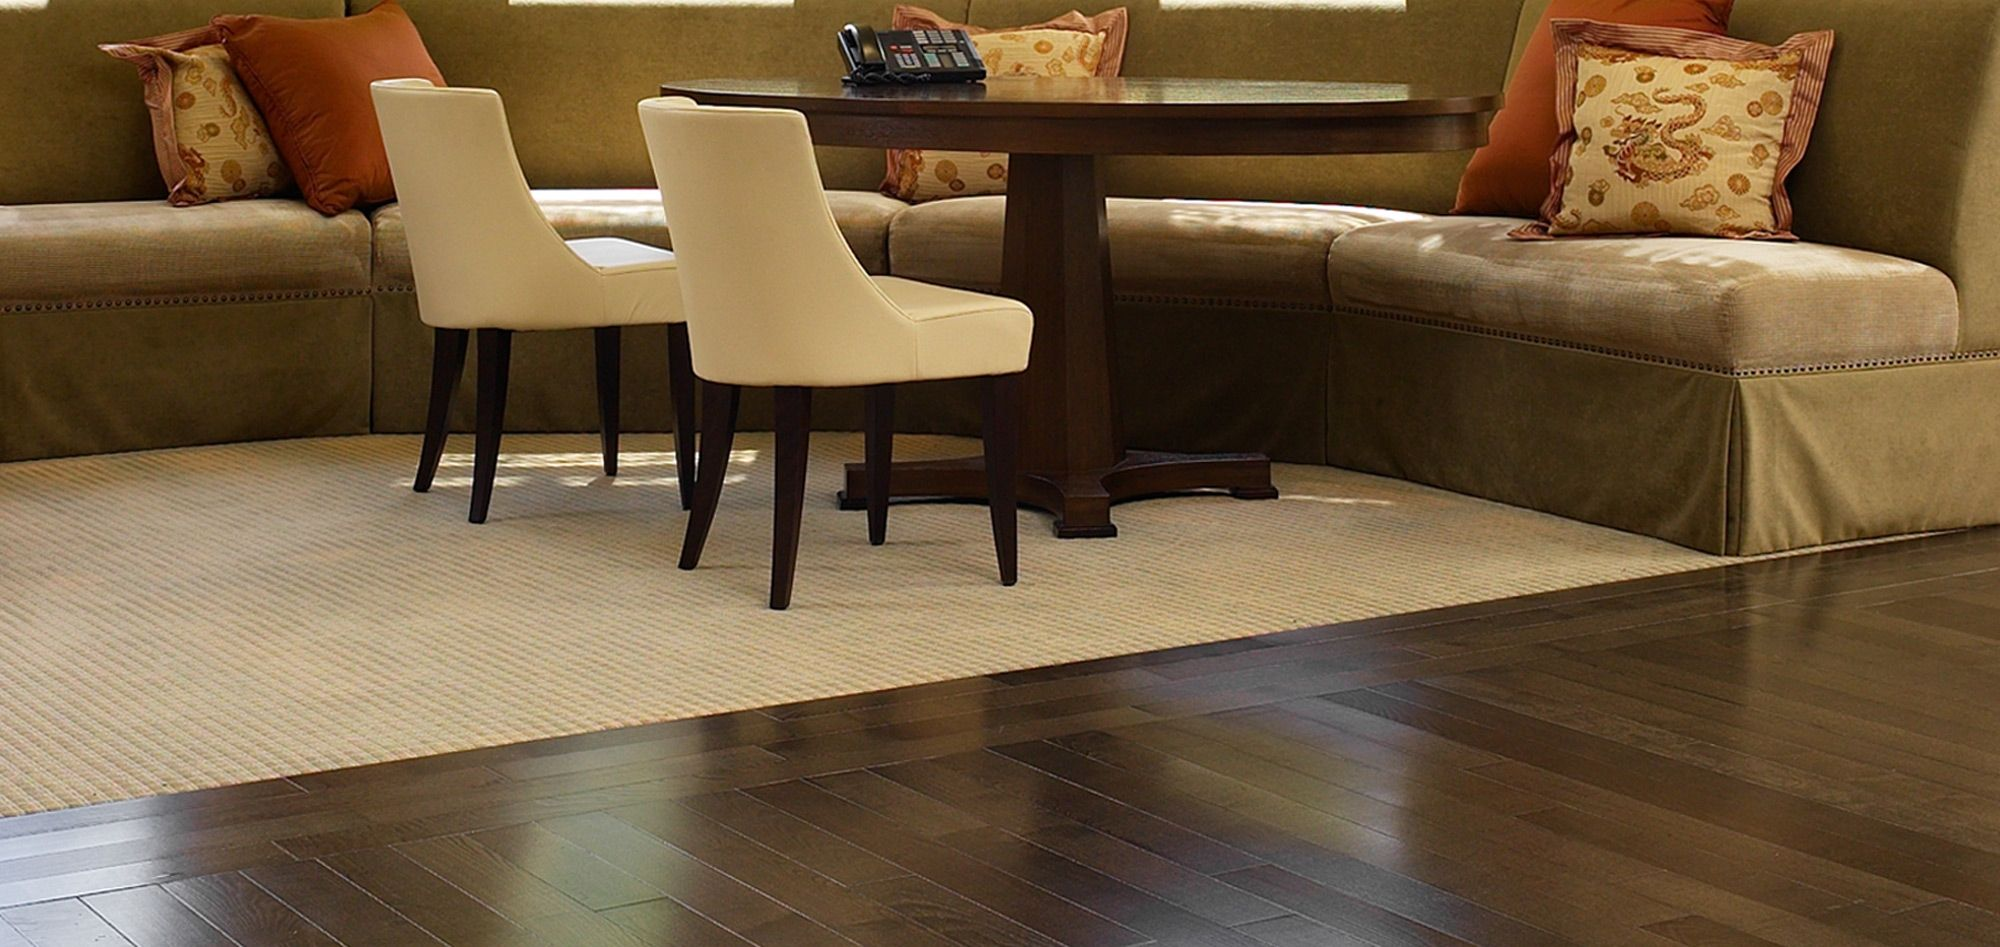 Elite hardwood floors kelowna glblcom pinterest